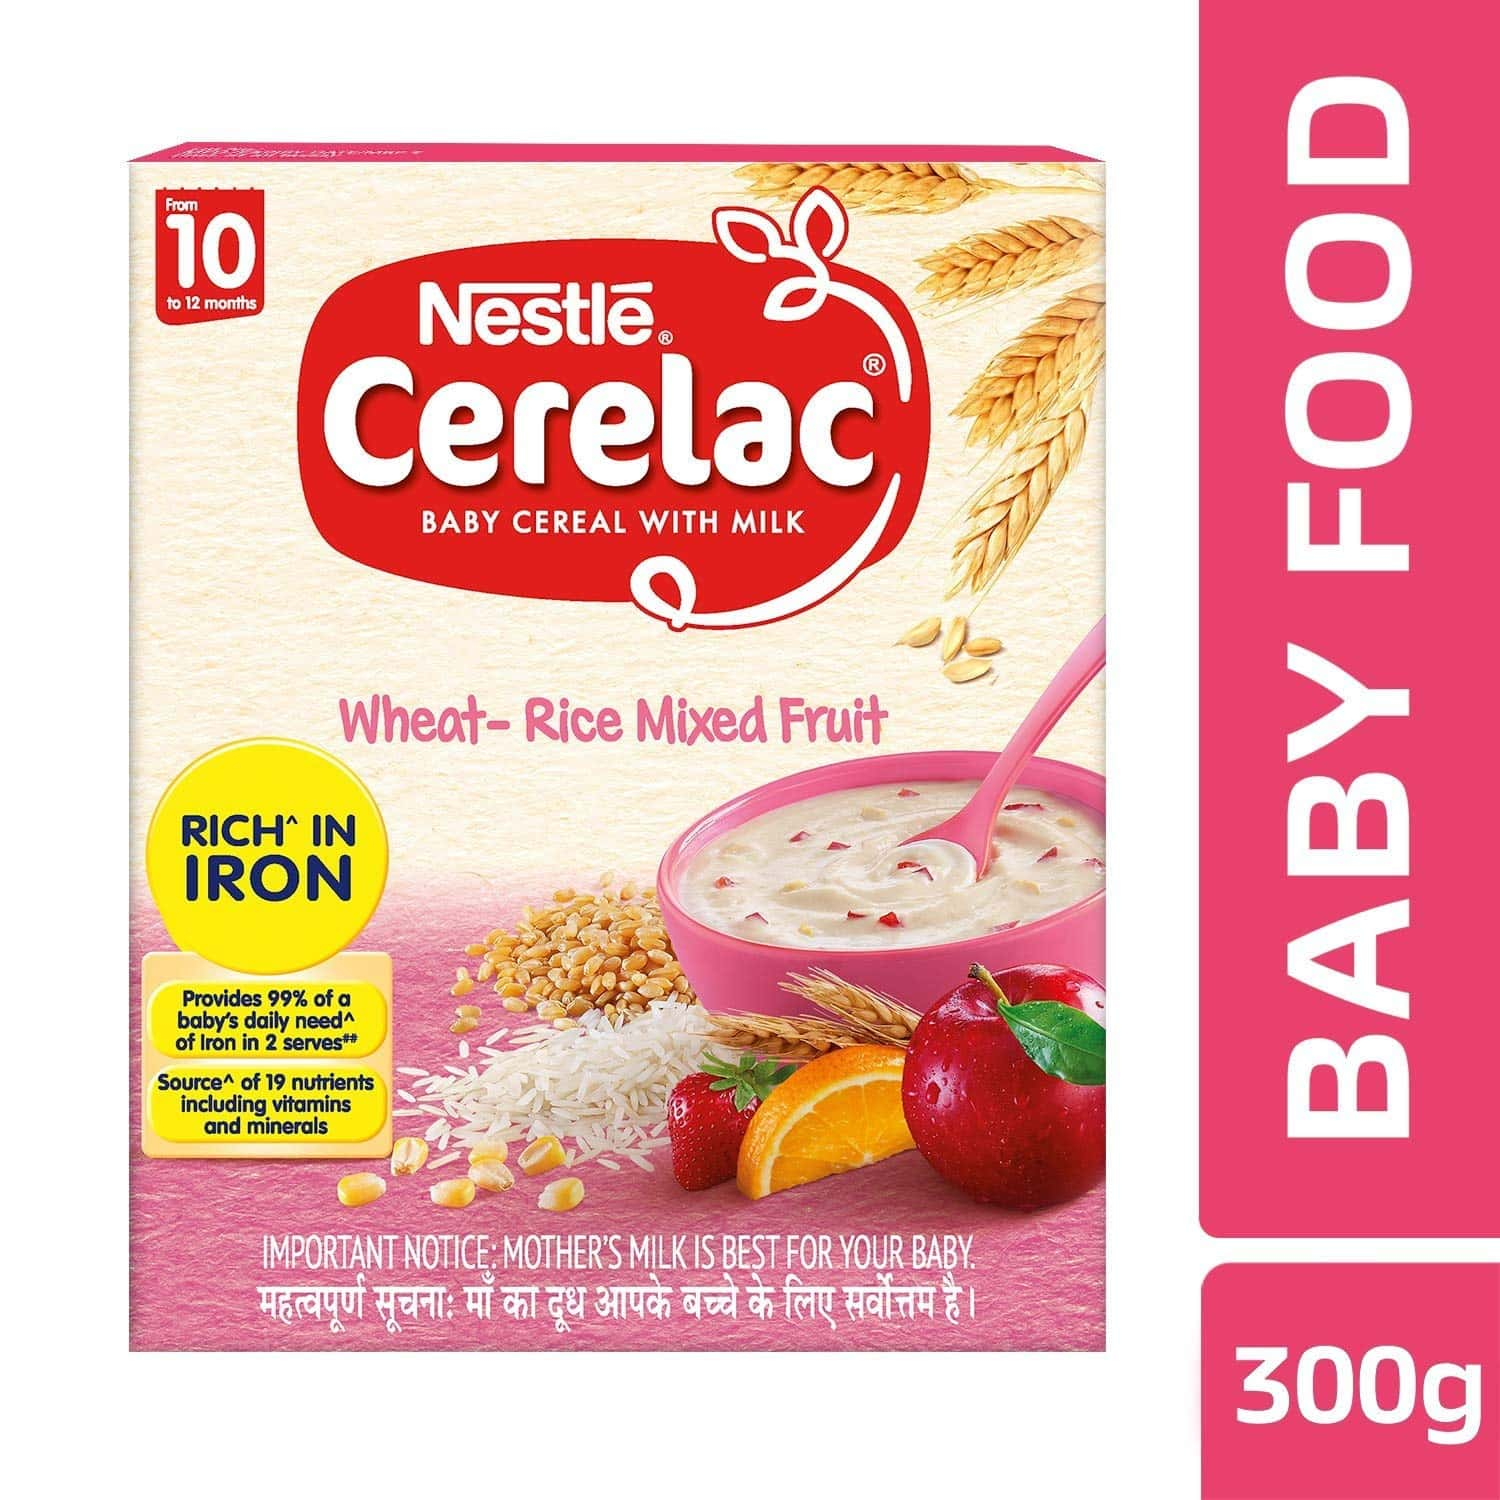 Nestle Cerelac Baby Food Milk Wheat Rice Mixed Fruit (from 10 Months) Box Of 300 G